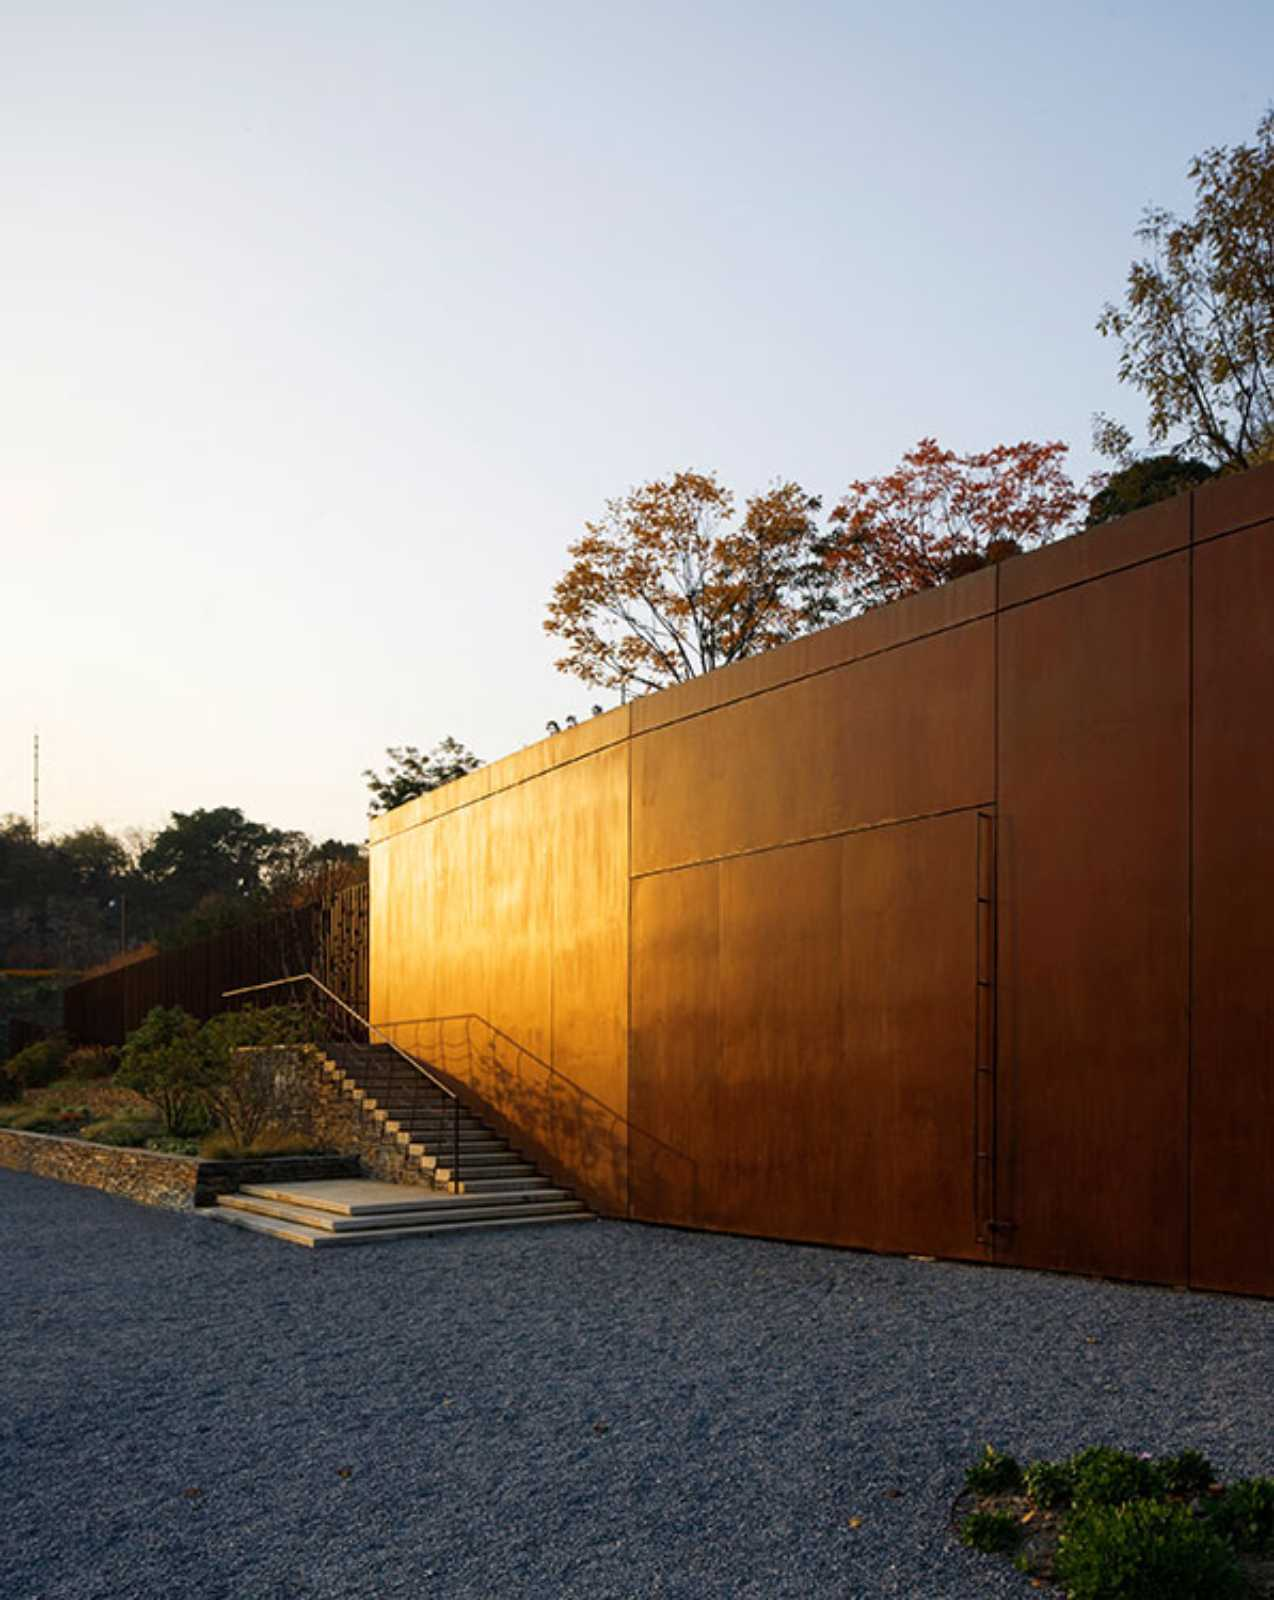 QUARRY GARDEN BY THUPDI & TSINGHUA UNIVERSITY | A As Architecture